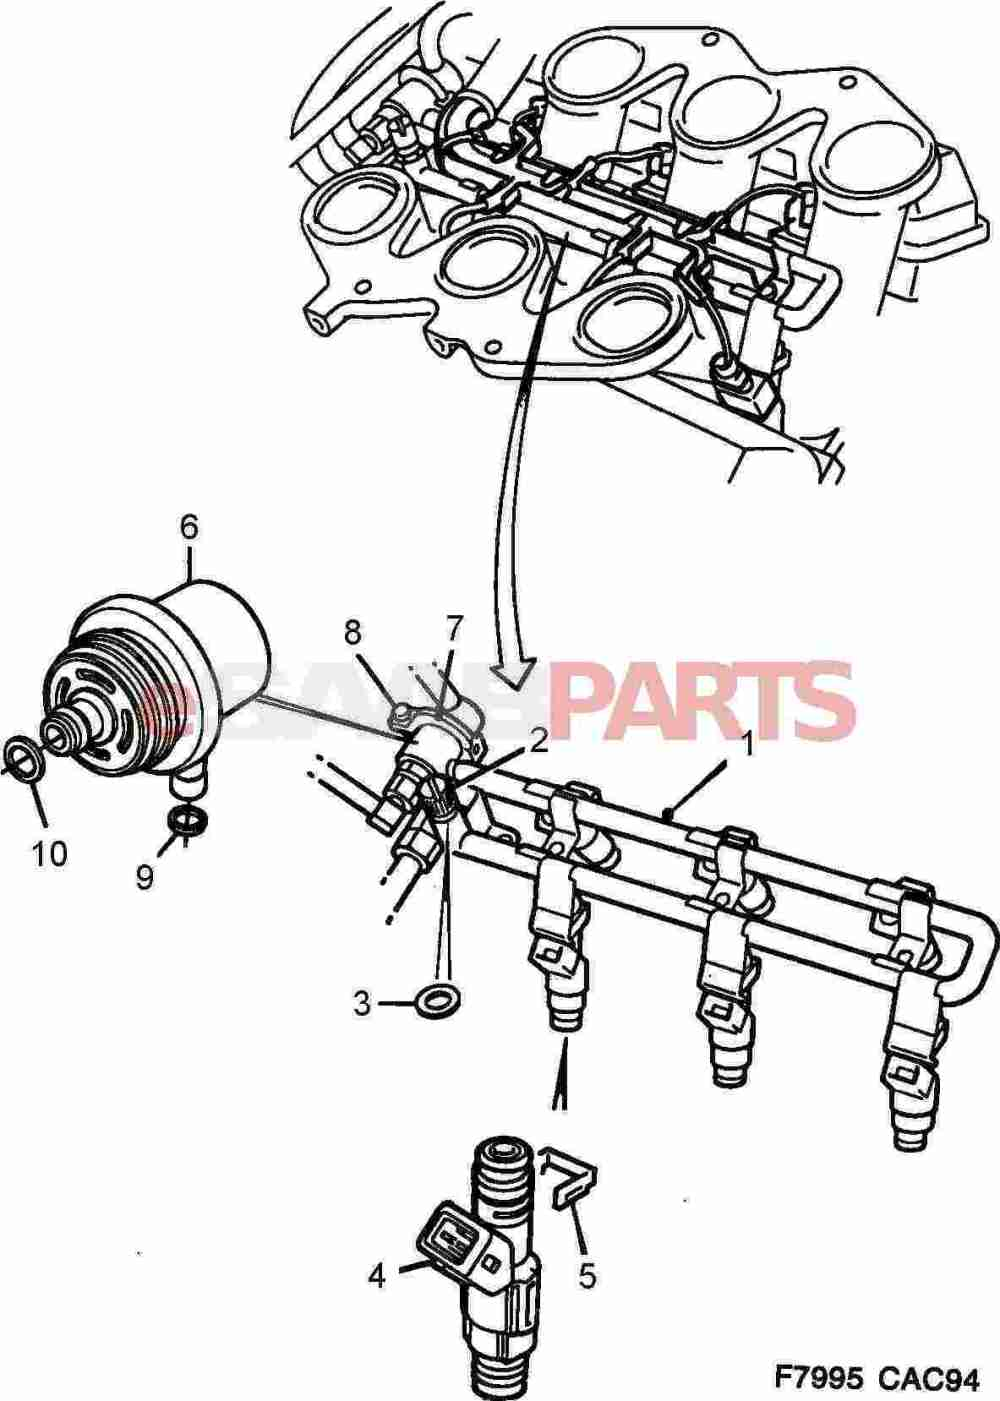 medium resolution of saab fuel pressure diagram wiring diagrams saab 9000 fuel system diagram just wiring diagram saab fuel